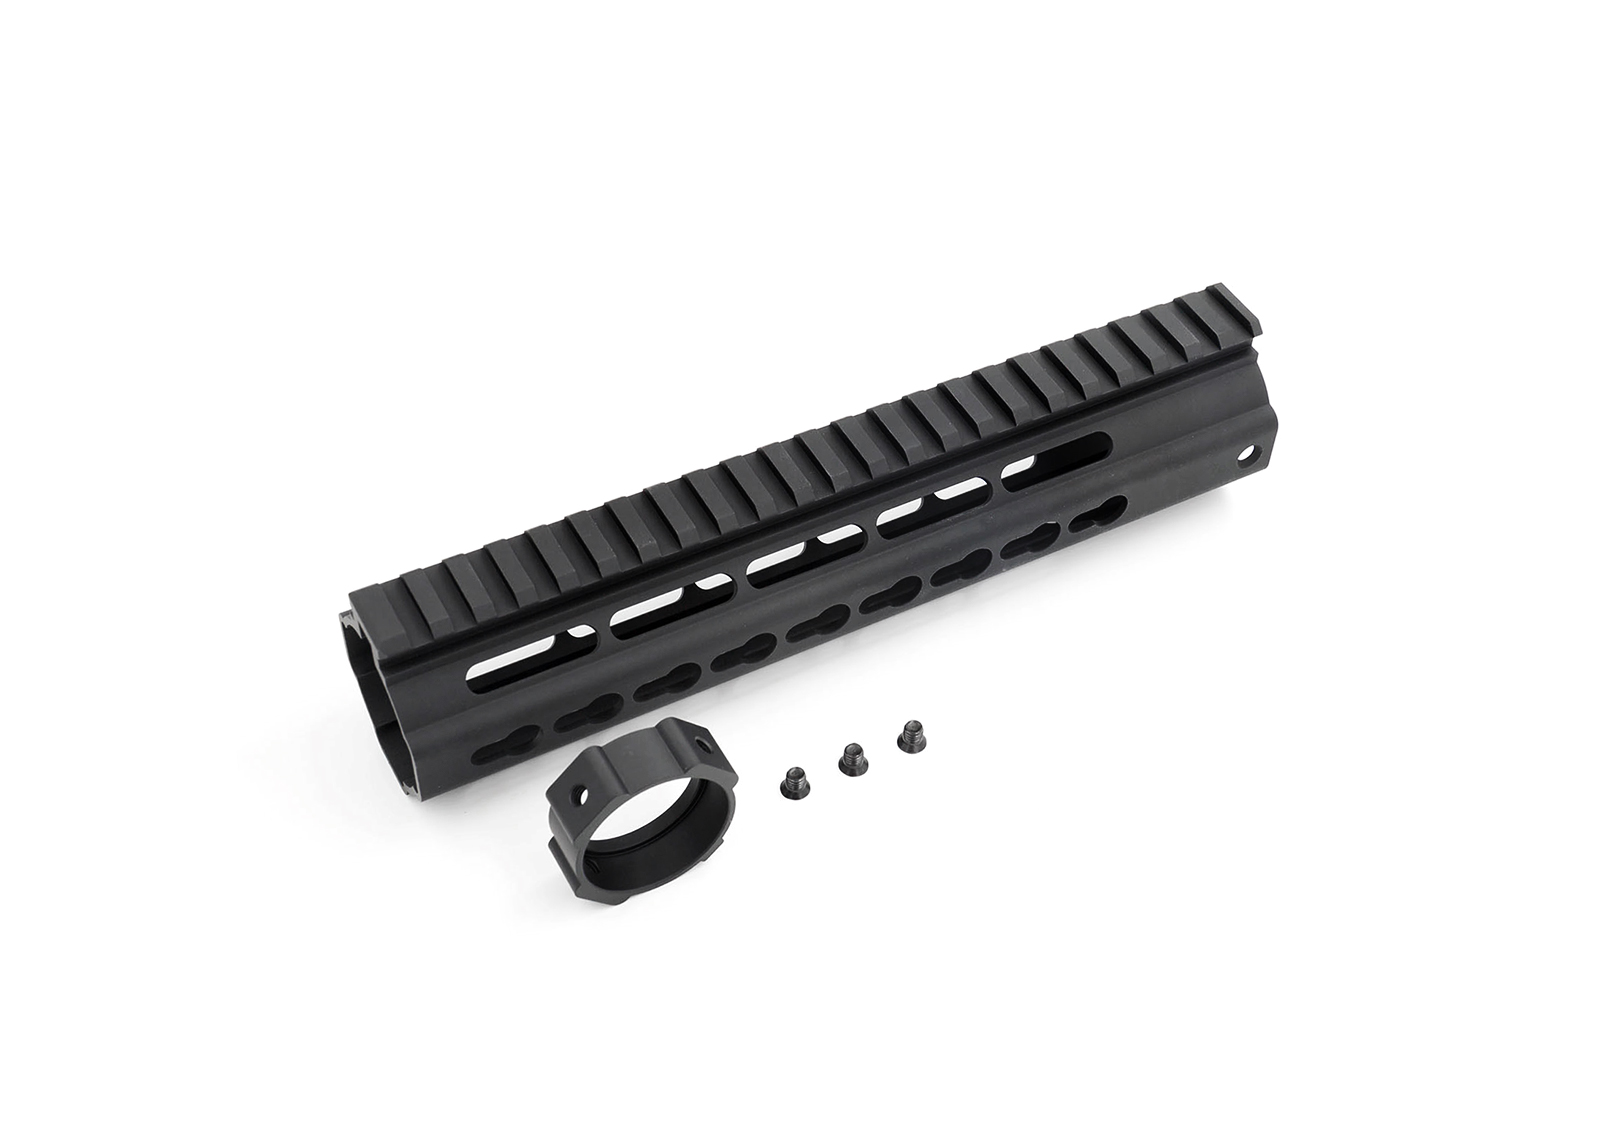 "Key Mod Rail 9.3""with Rear Base and Screws (Black) - Modify XTC Spare Parts"